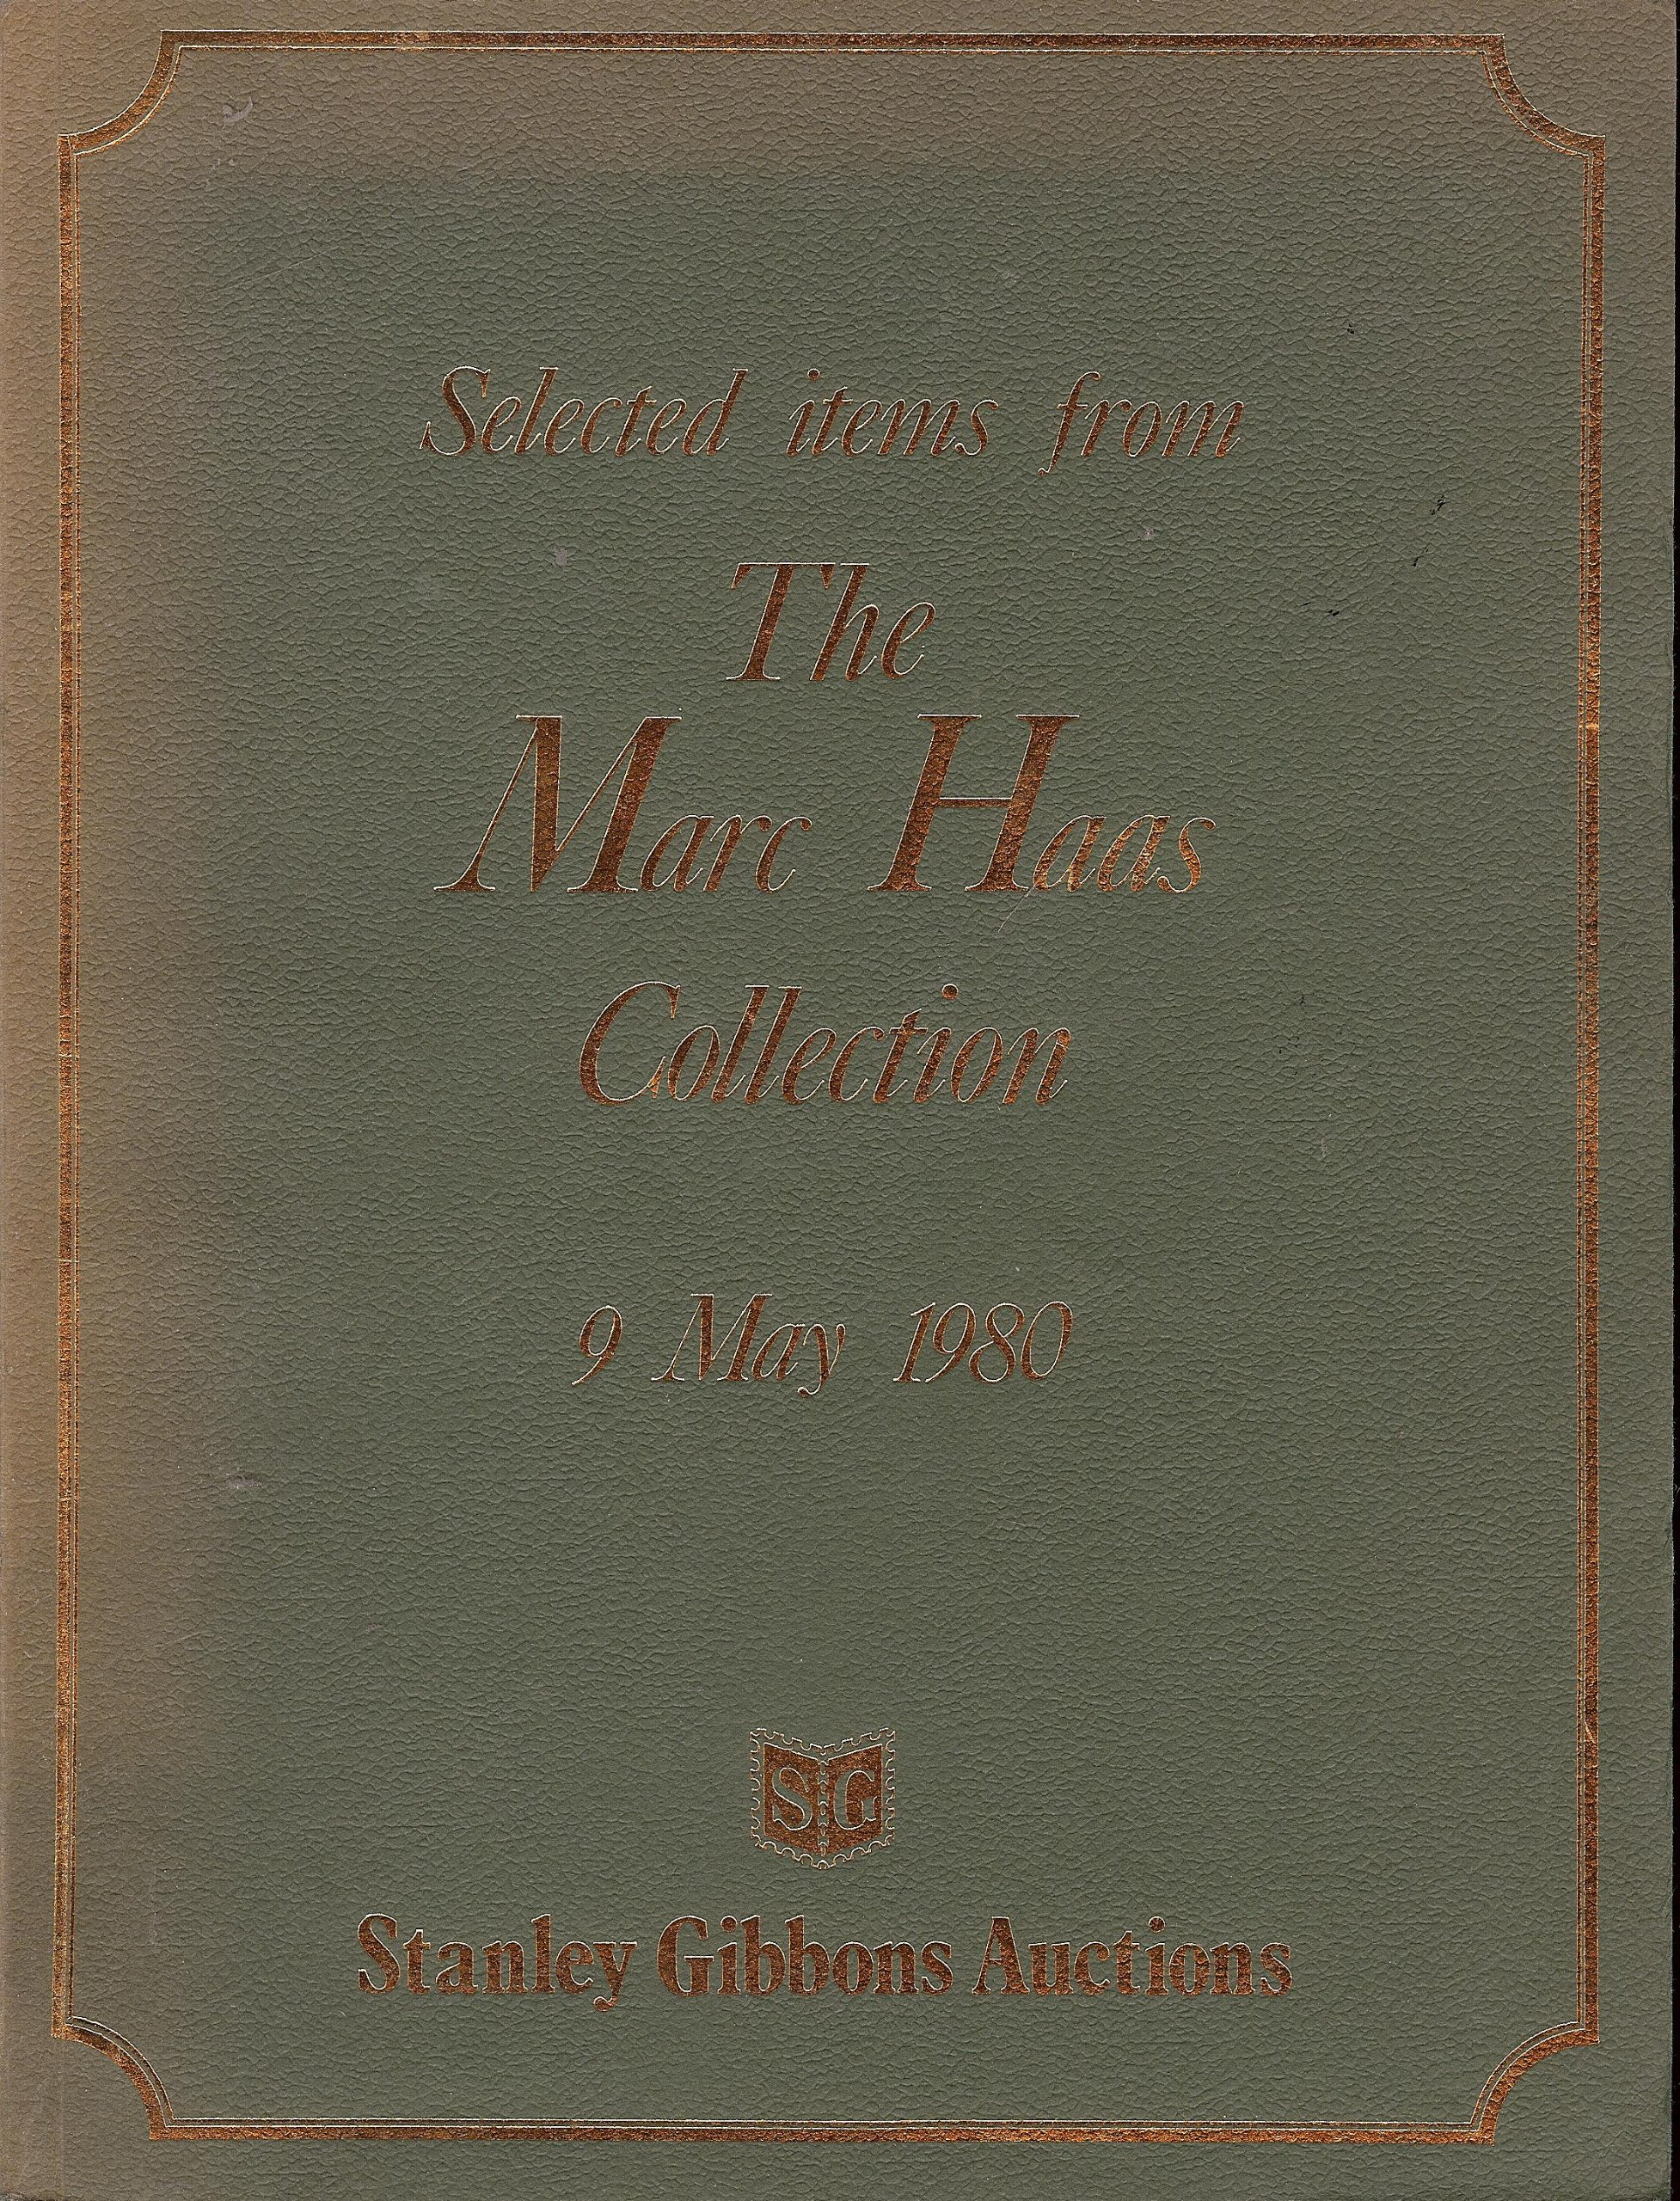 The Marc Haas Collection (Stamp Auction Catalog) (Stanley